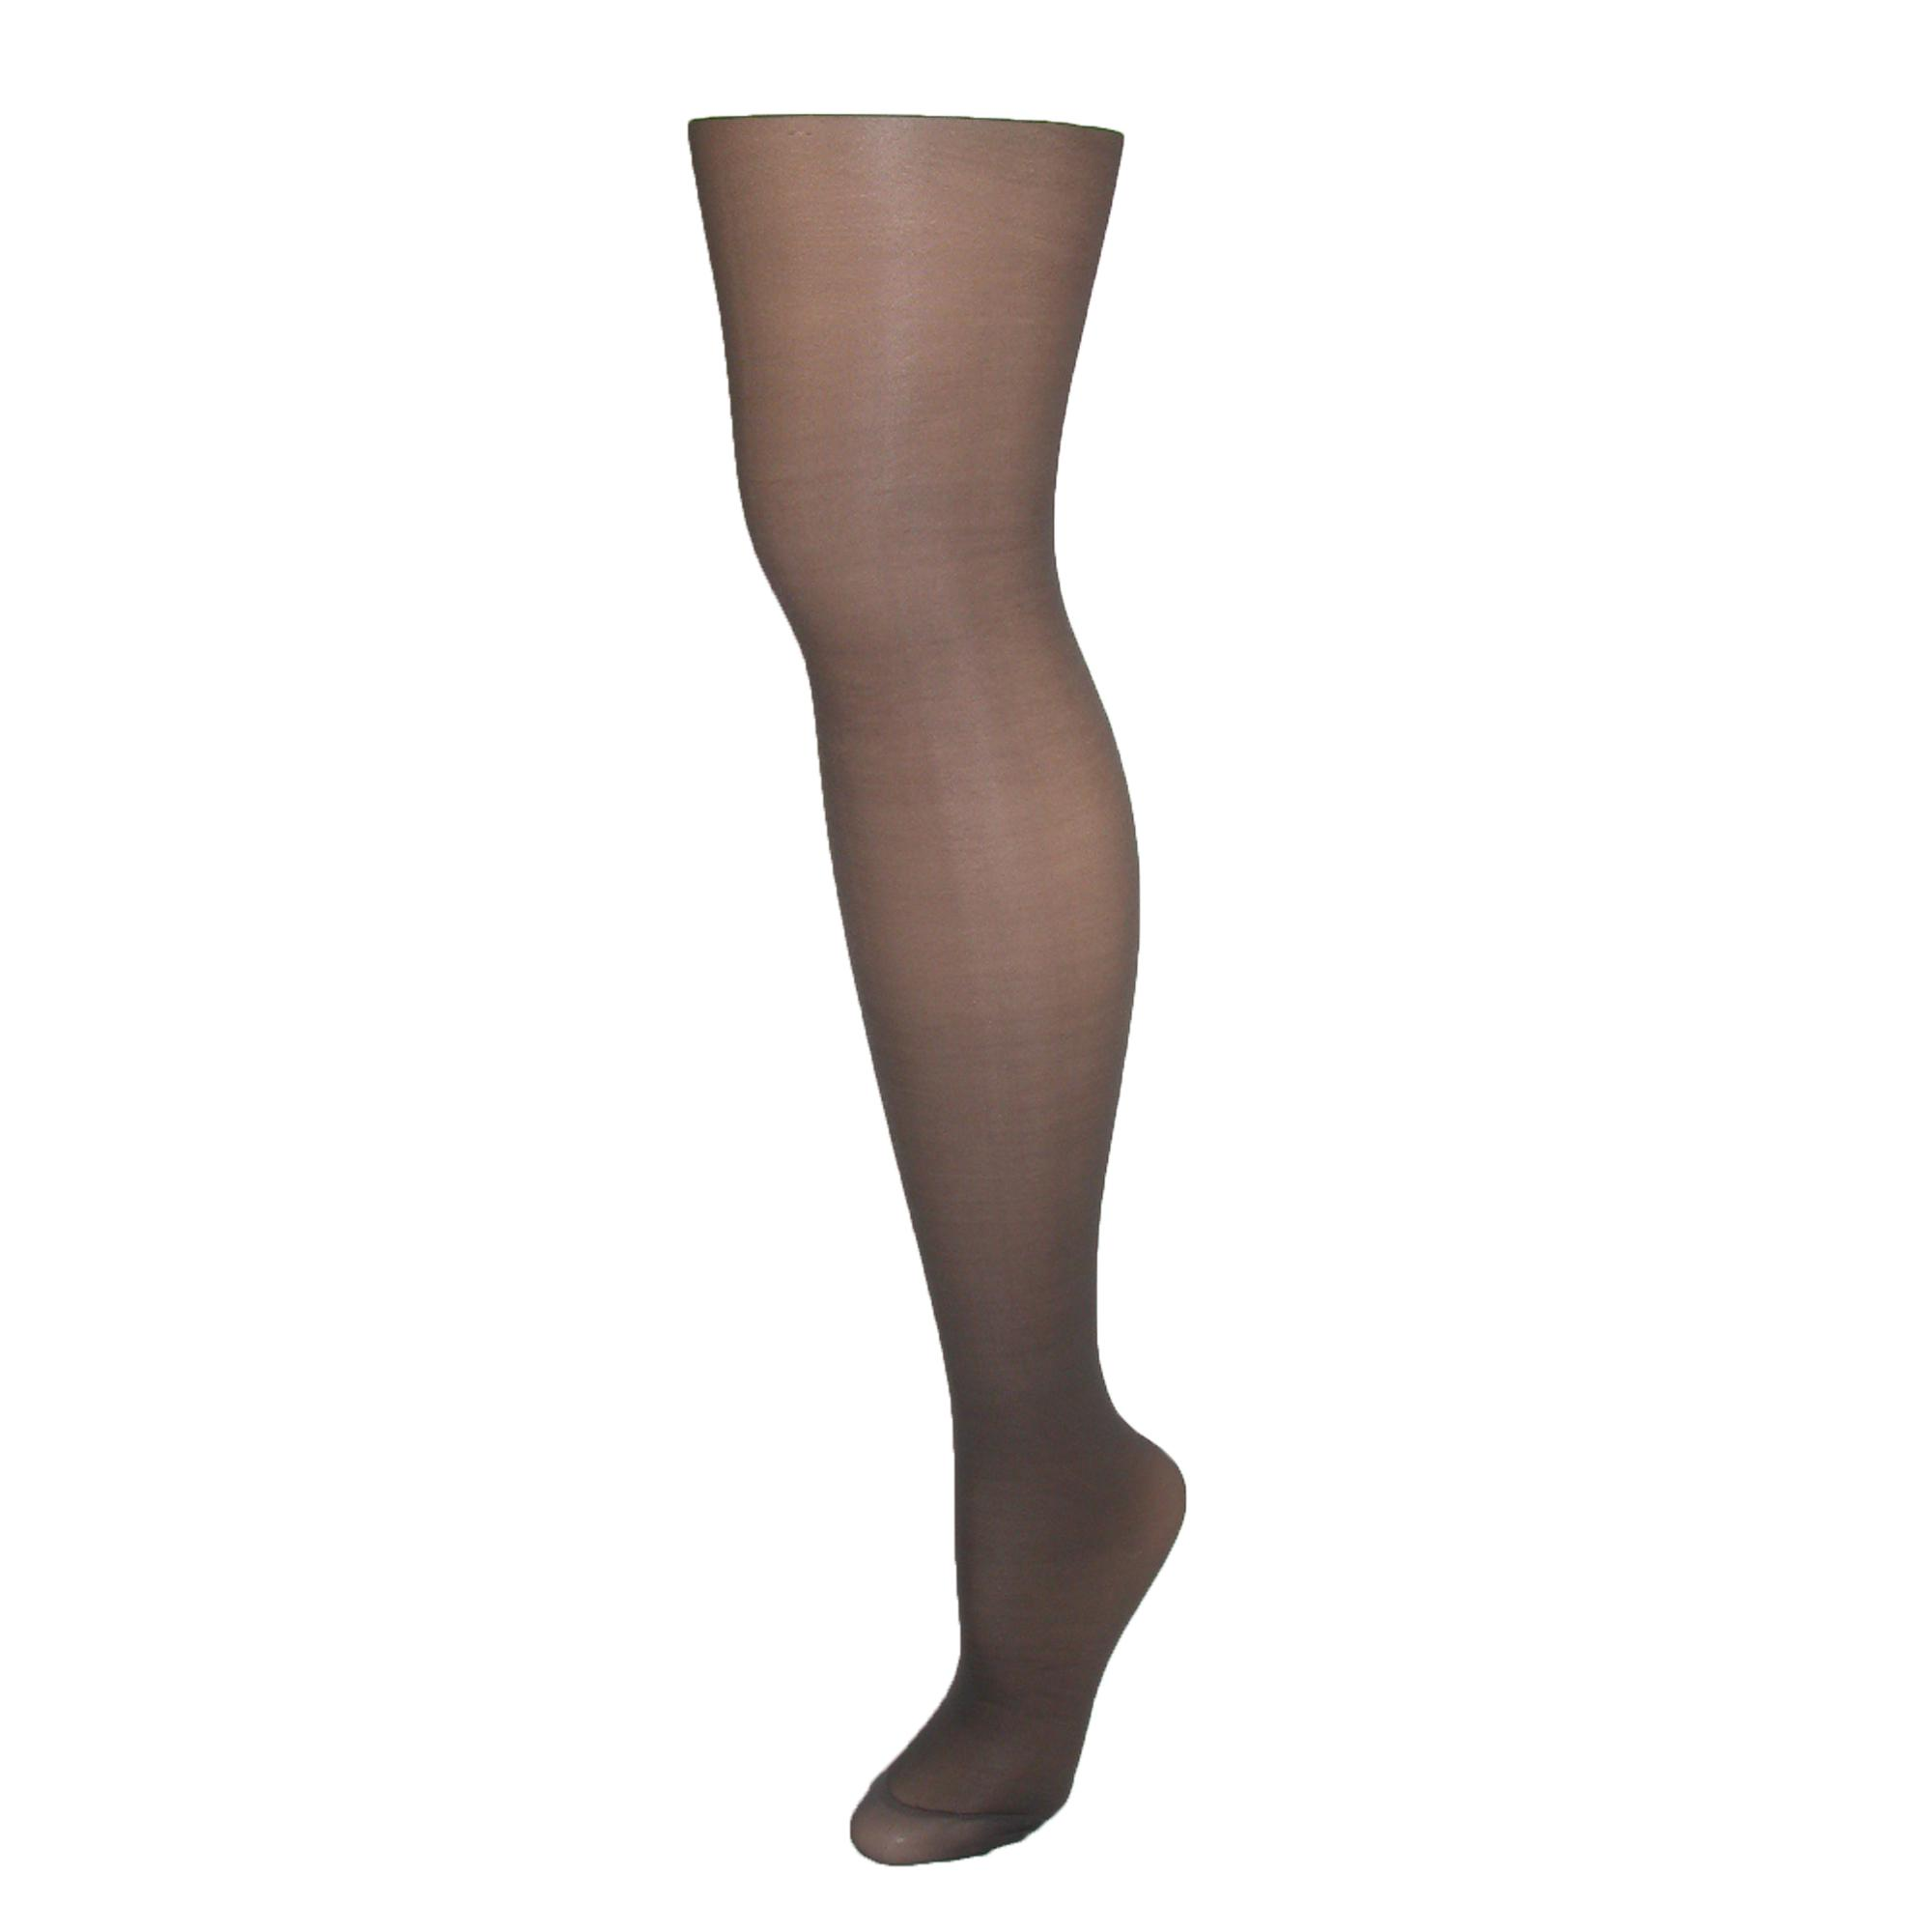 Hanes_Alive_Women's_Nylon_Support_Reinforced_Toe_Sheer_Pantyhose_-